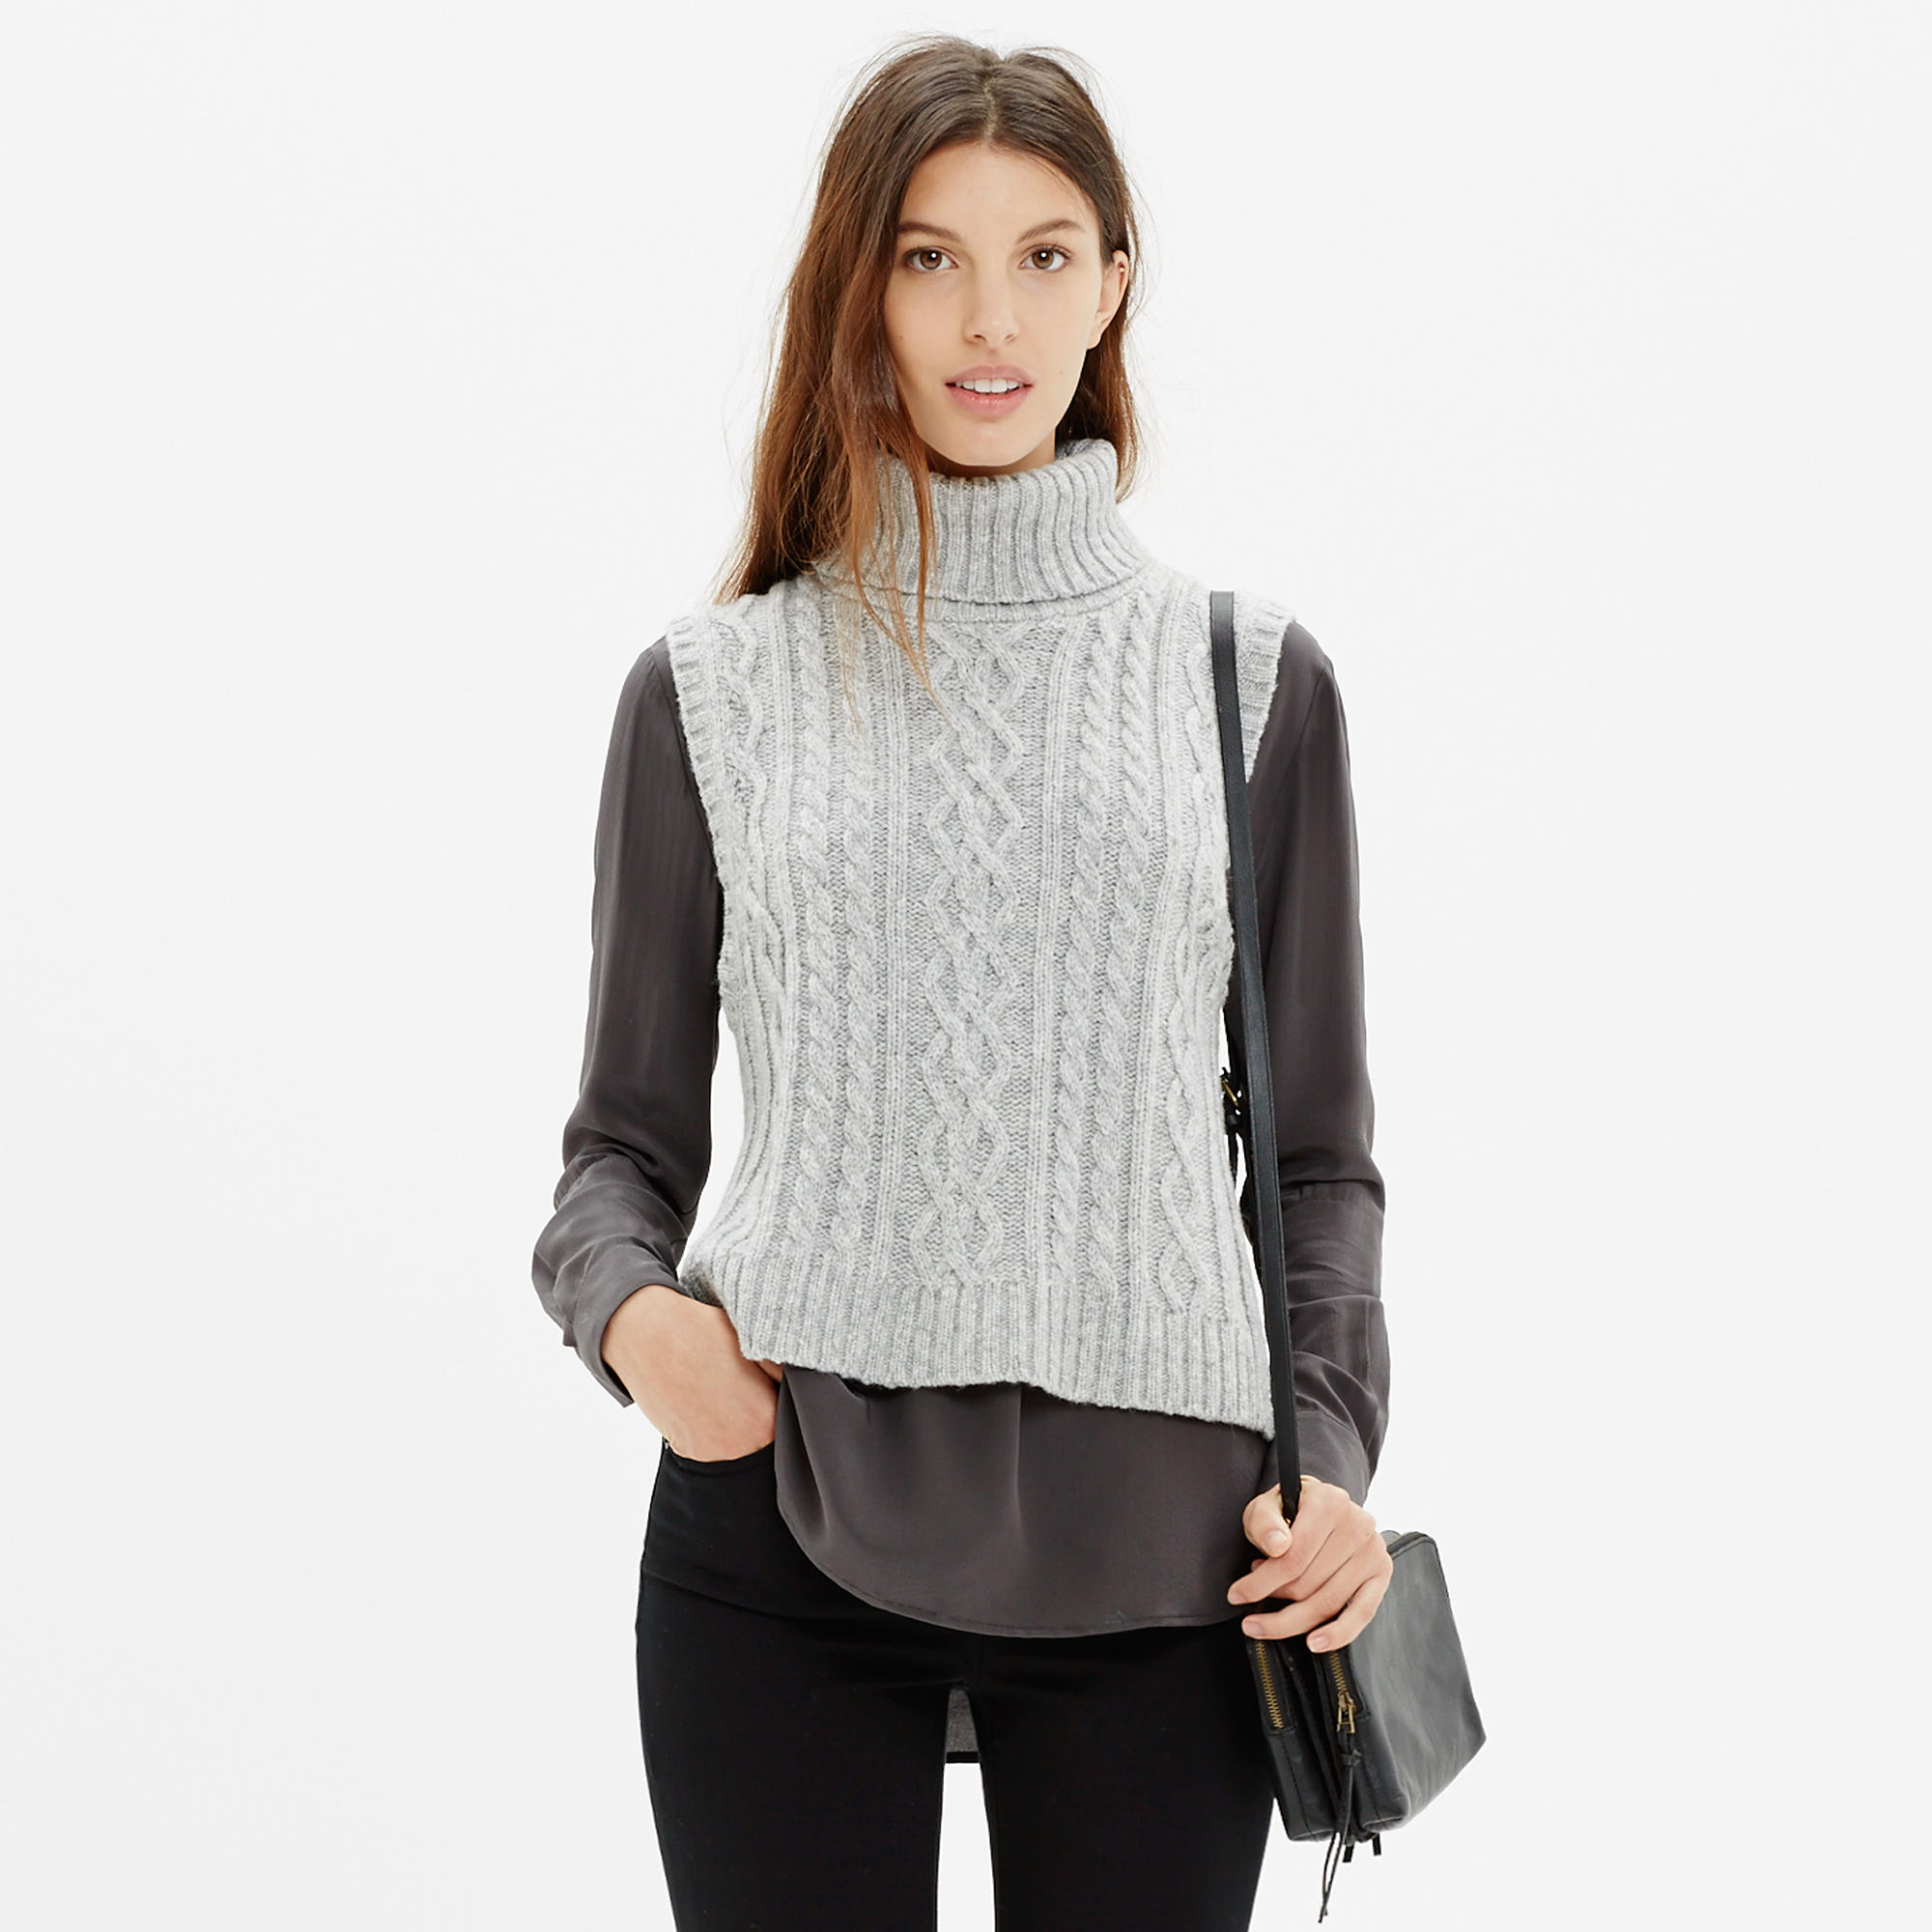 Turtleneck Sweater-Vest : pullovers | Madewell